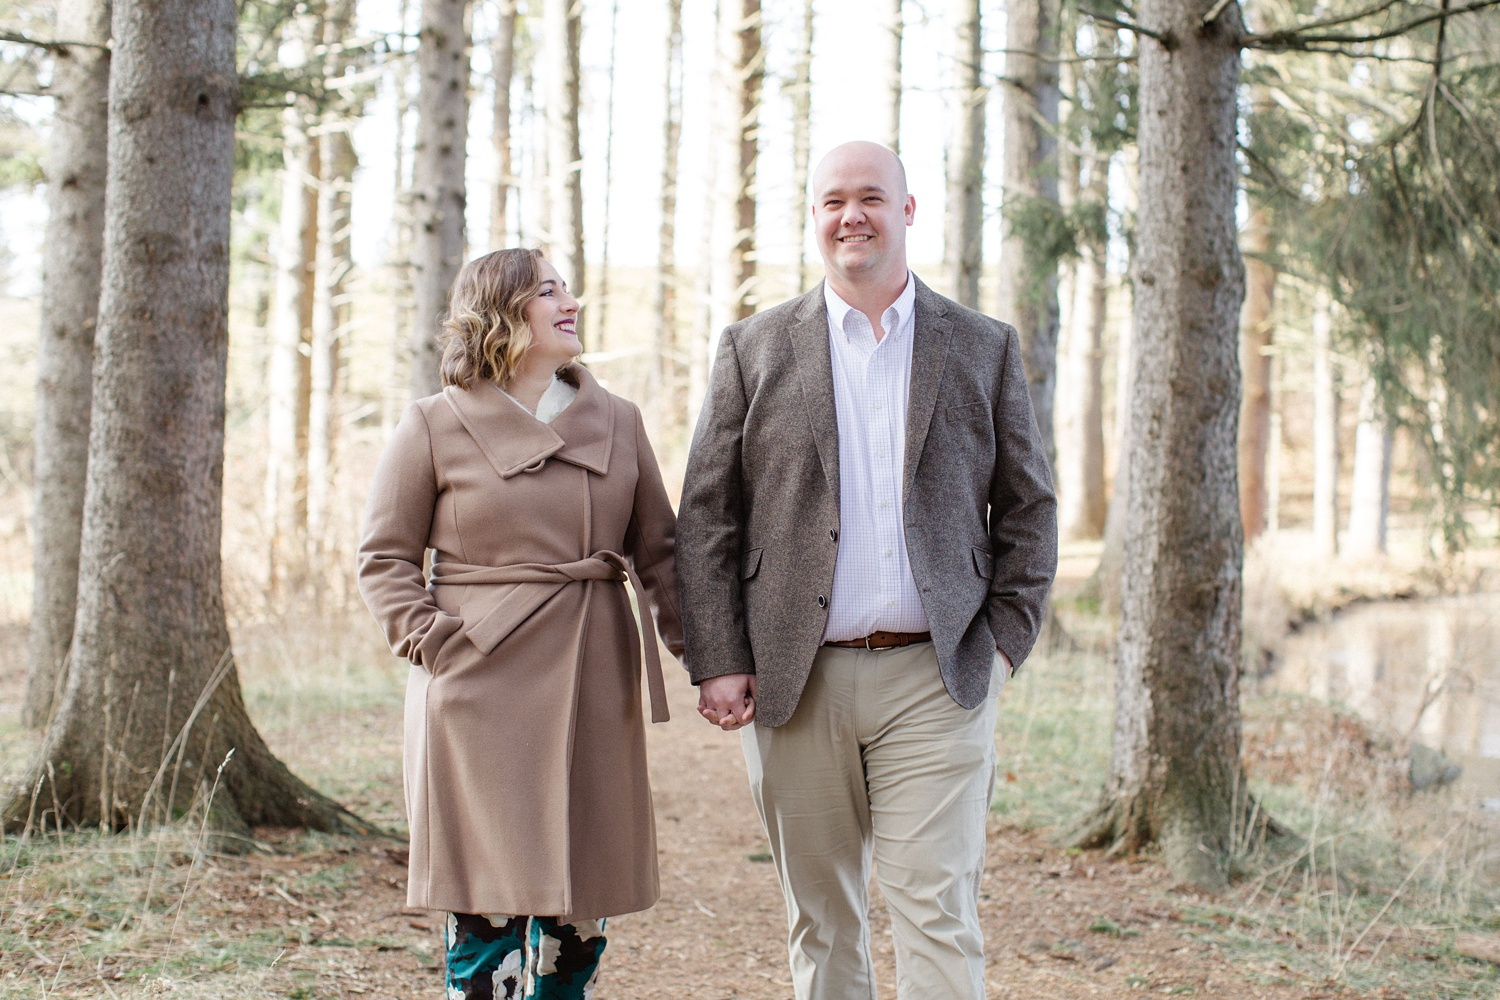 Clarks Summit PA Engagement Session Anniversary Photos_0005.jpg